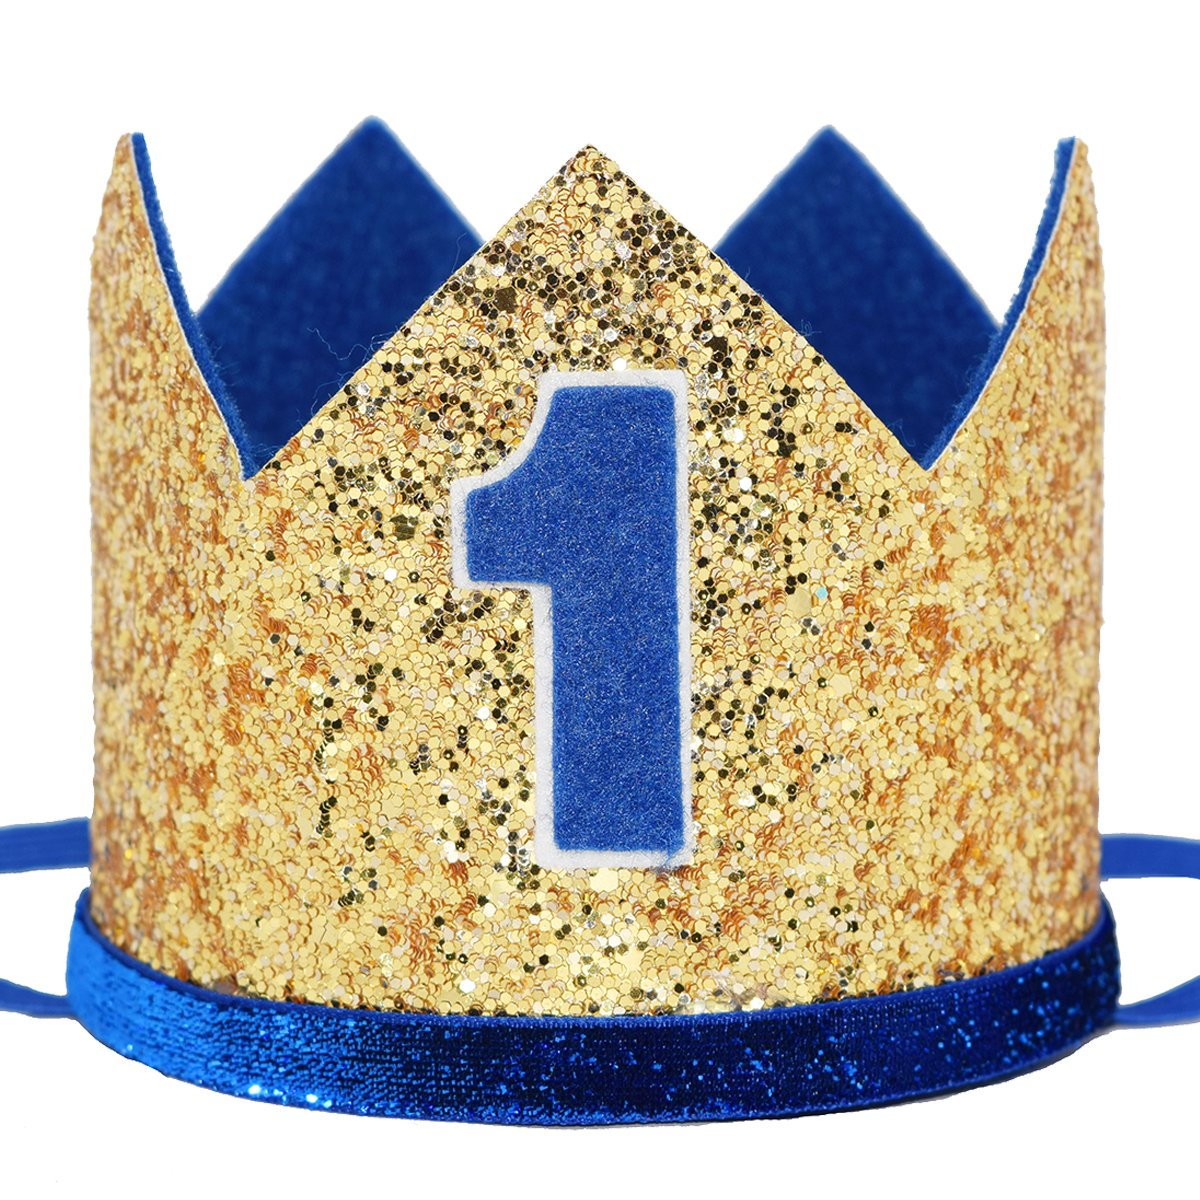 Maticr Glitter Baby Boy First Birthday Crown Number 1 Headband Little Prince Princess Cake Smash Photo